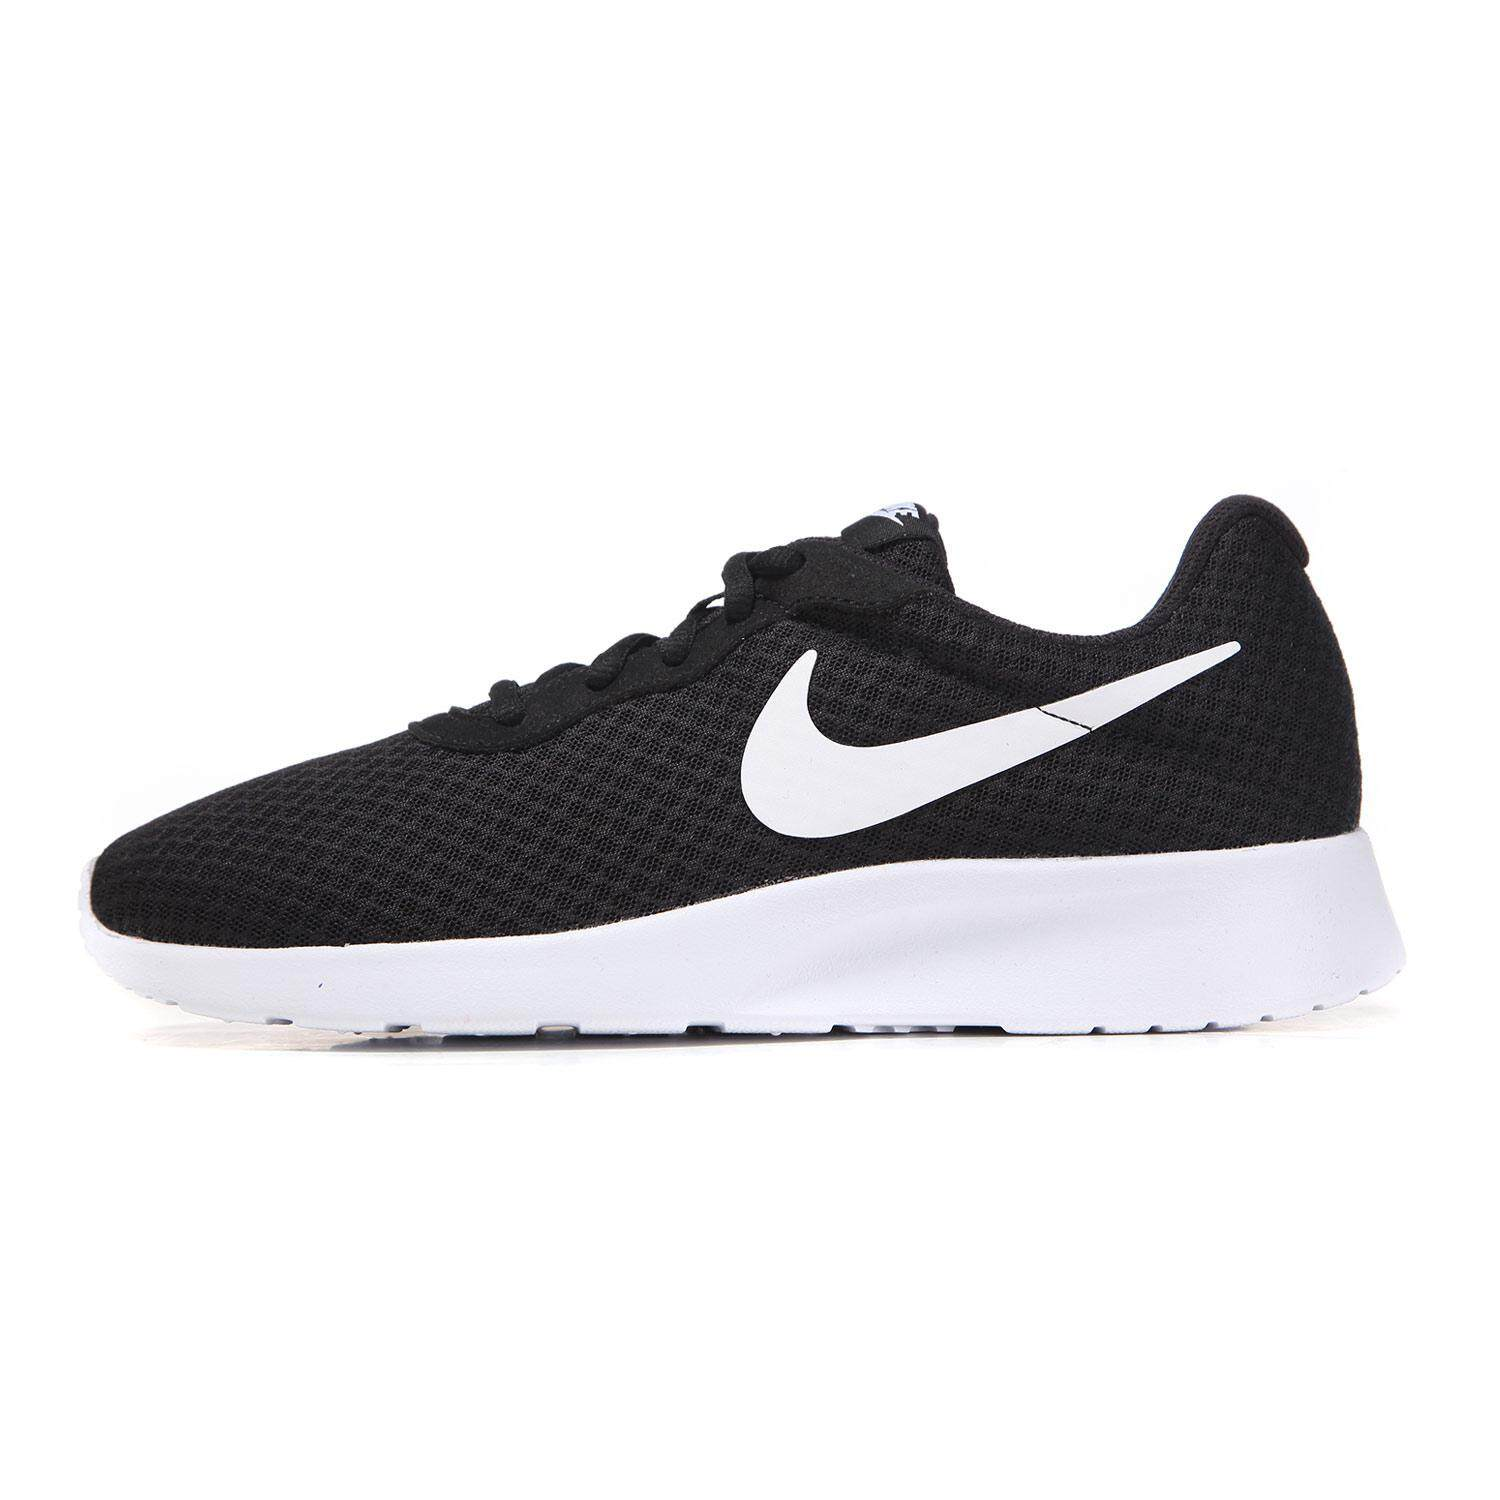 online store aa0c7 da9e3 NIKE TANJUN men s shoes women s shoes sports casual light mesh running shoes  812654-010 812654